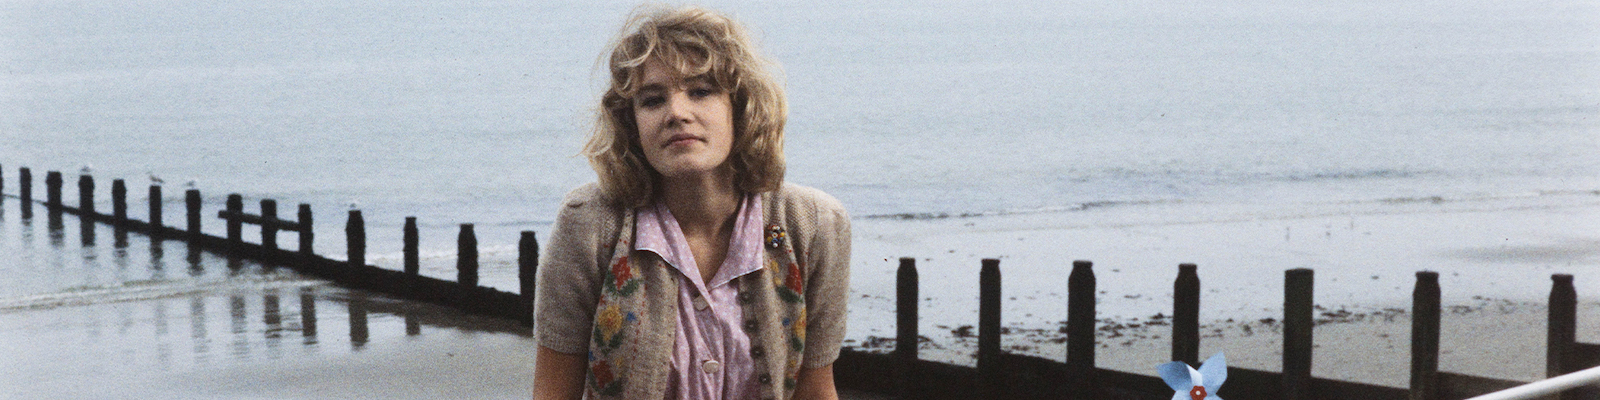 Emily Lloyd sits on a railing with the sea in the background